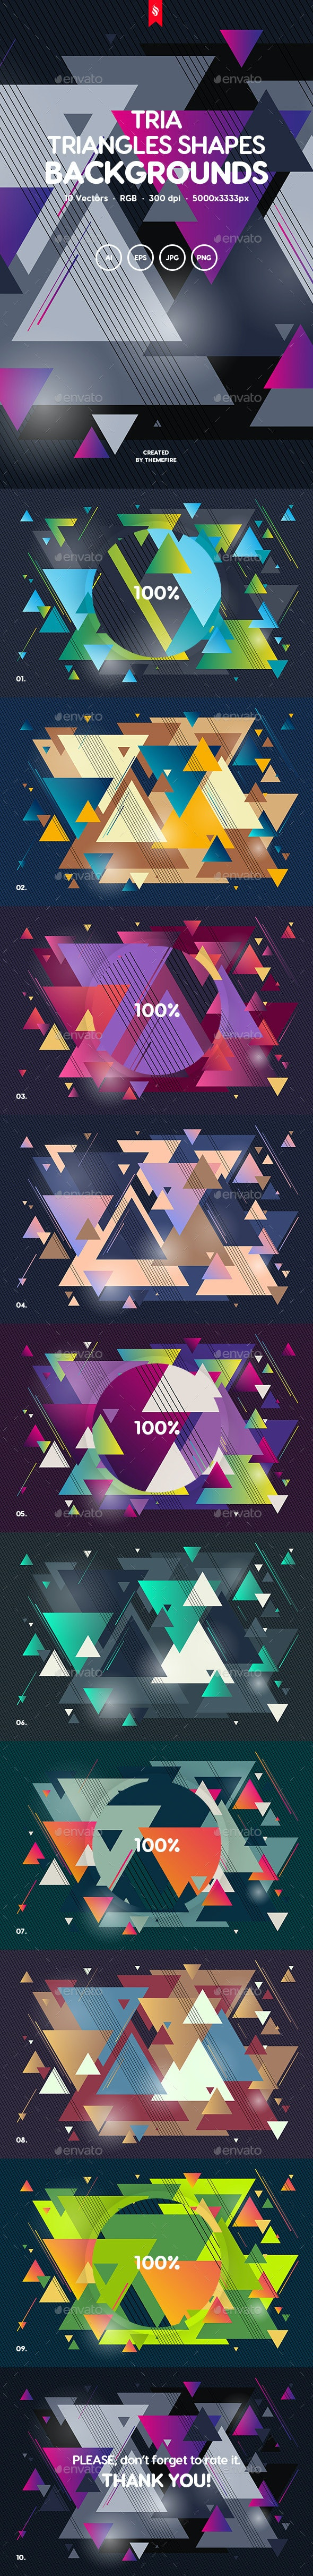 Tria -Triangles Shapes Backgrounds - Abstract Backgrounds